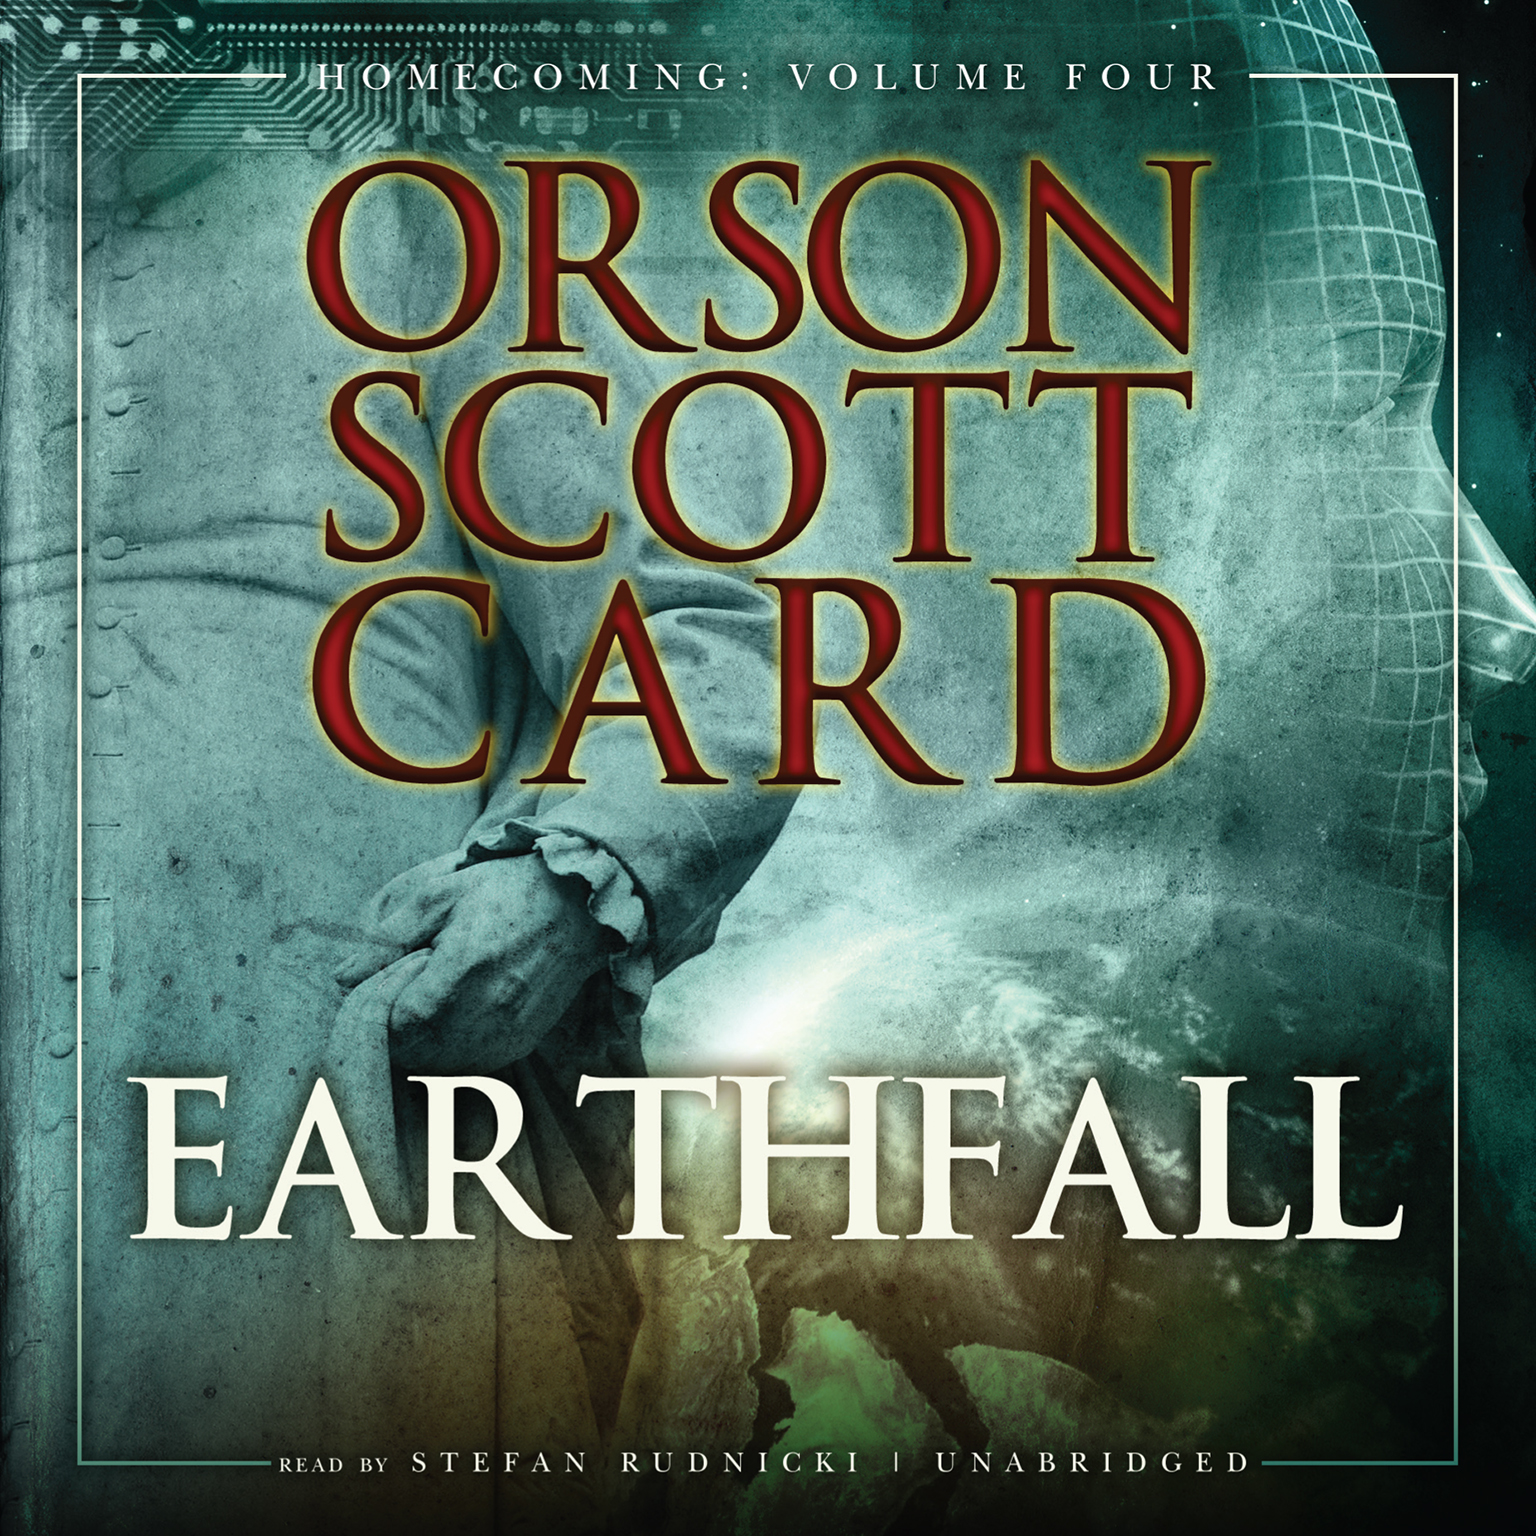 Printable Earthfall: Homecoming: Volume 4 Audiobook Cover Art